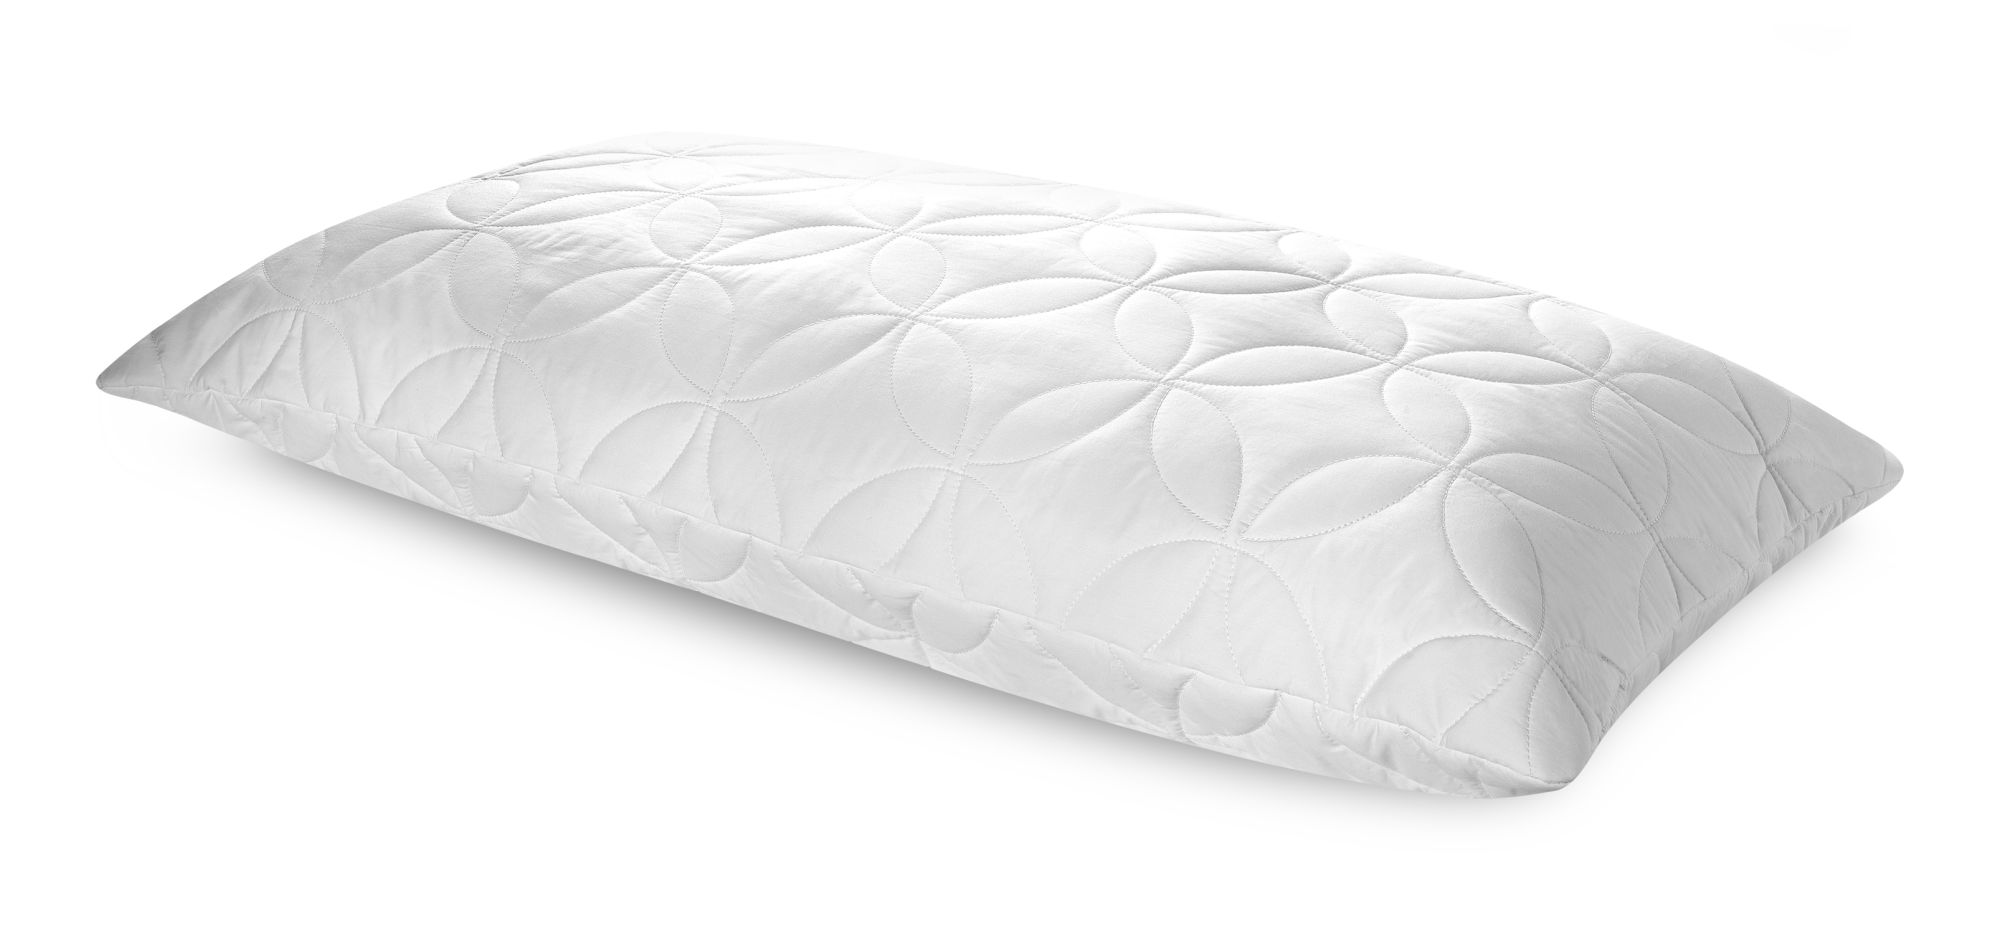 SOFT & CONFORMING QUEEN PILLOW